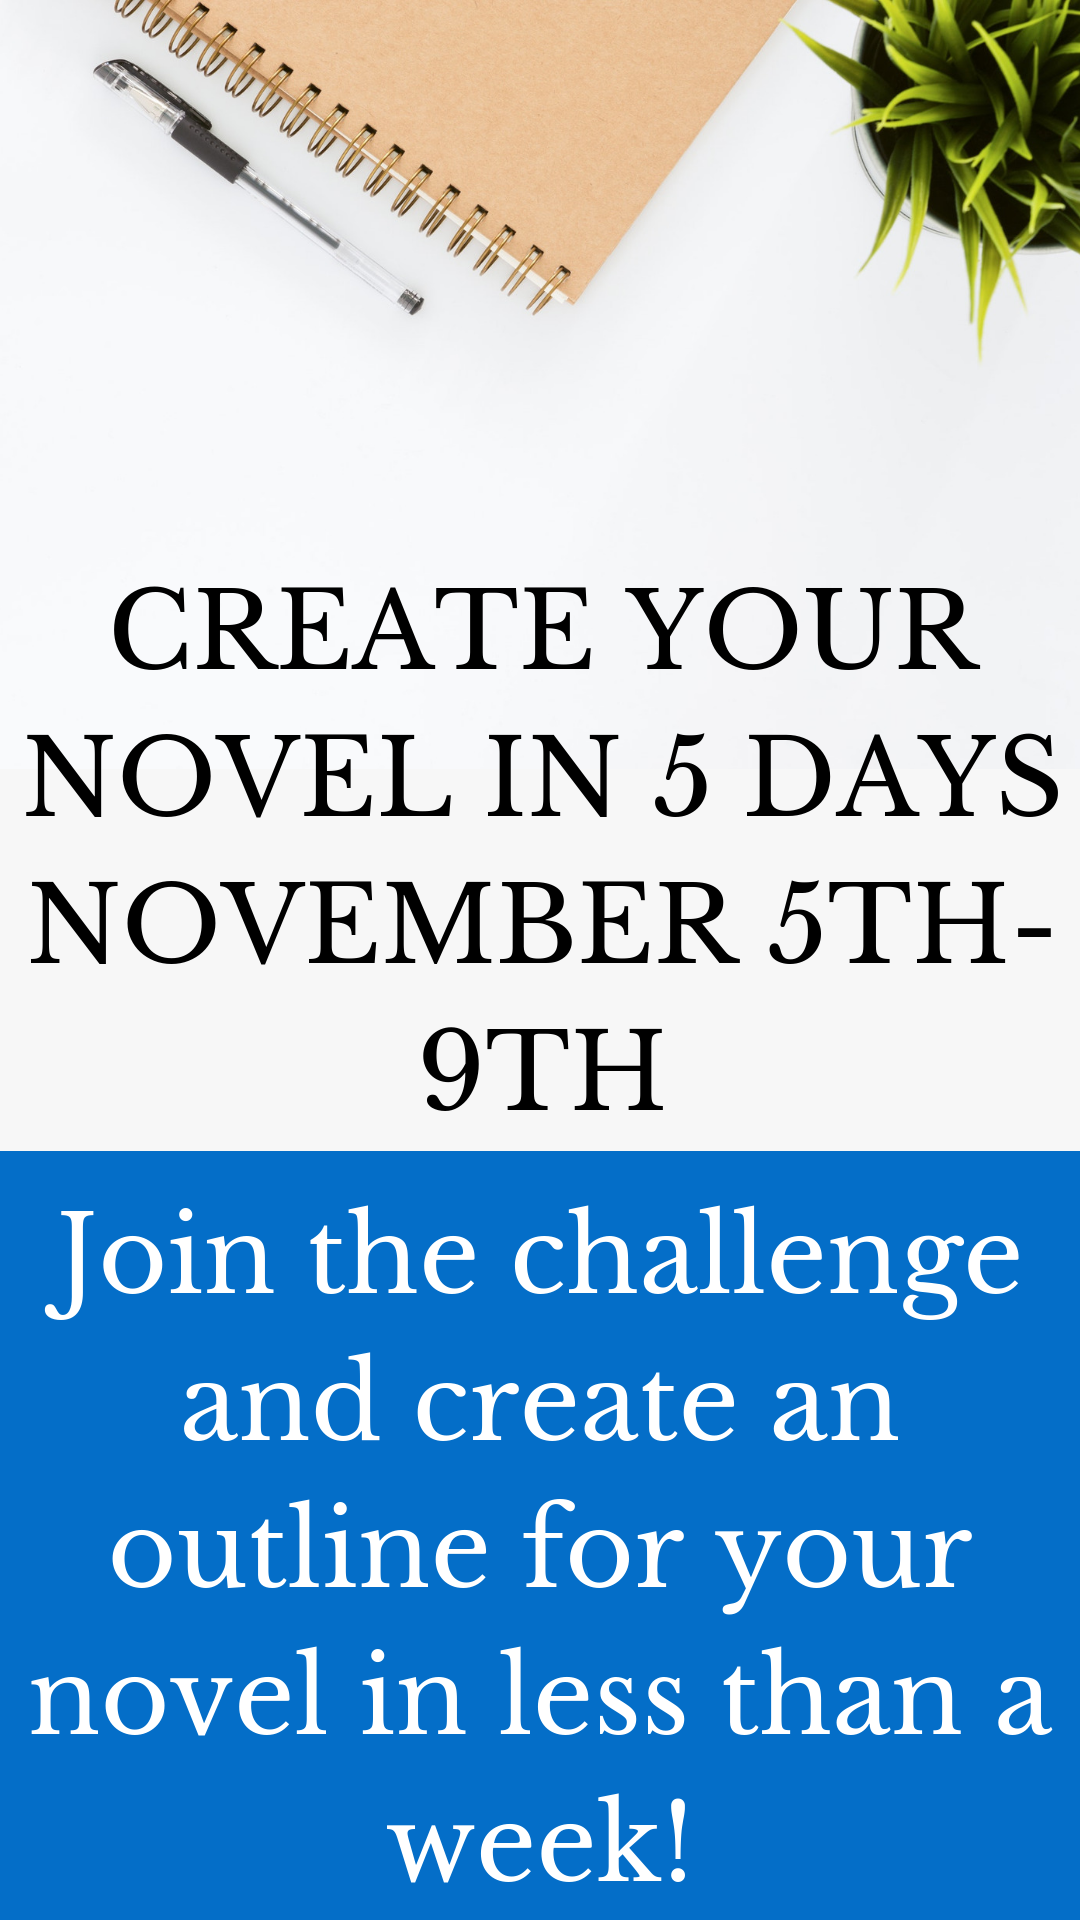 Learn How Easy It Is To Create An Outline For Your Novel